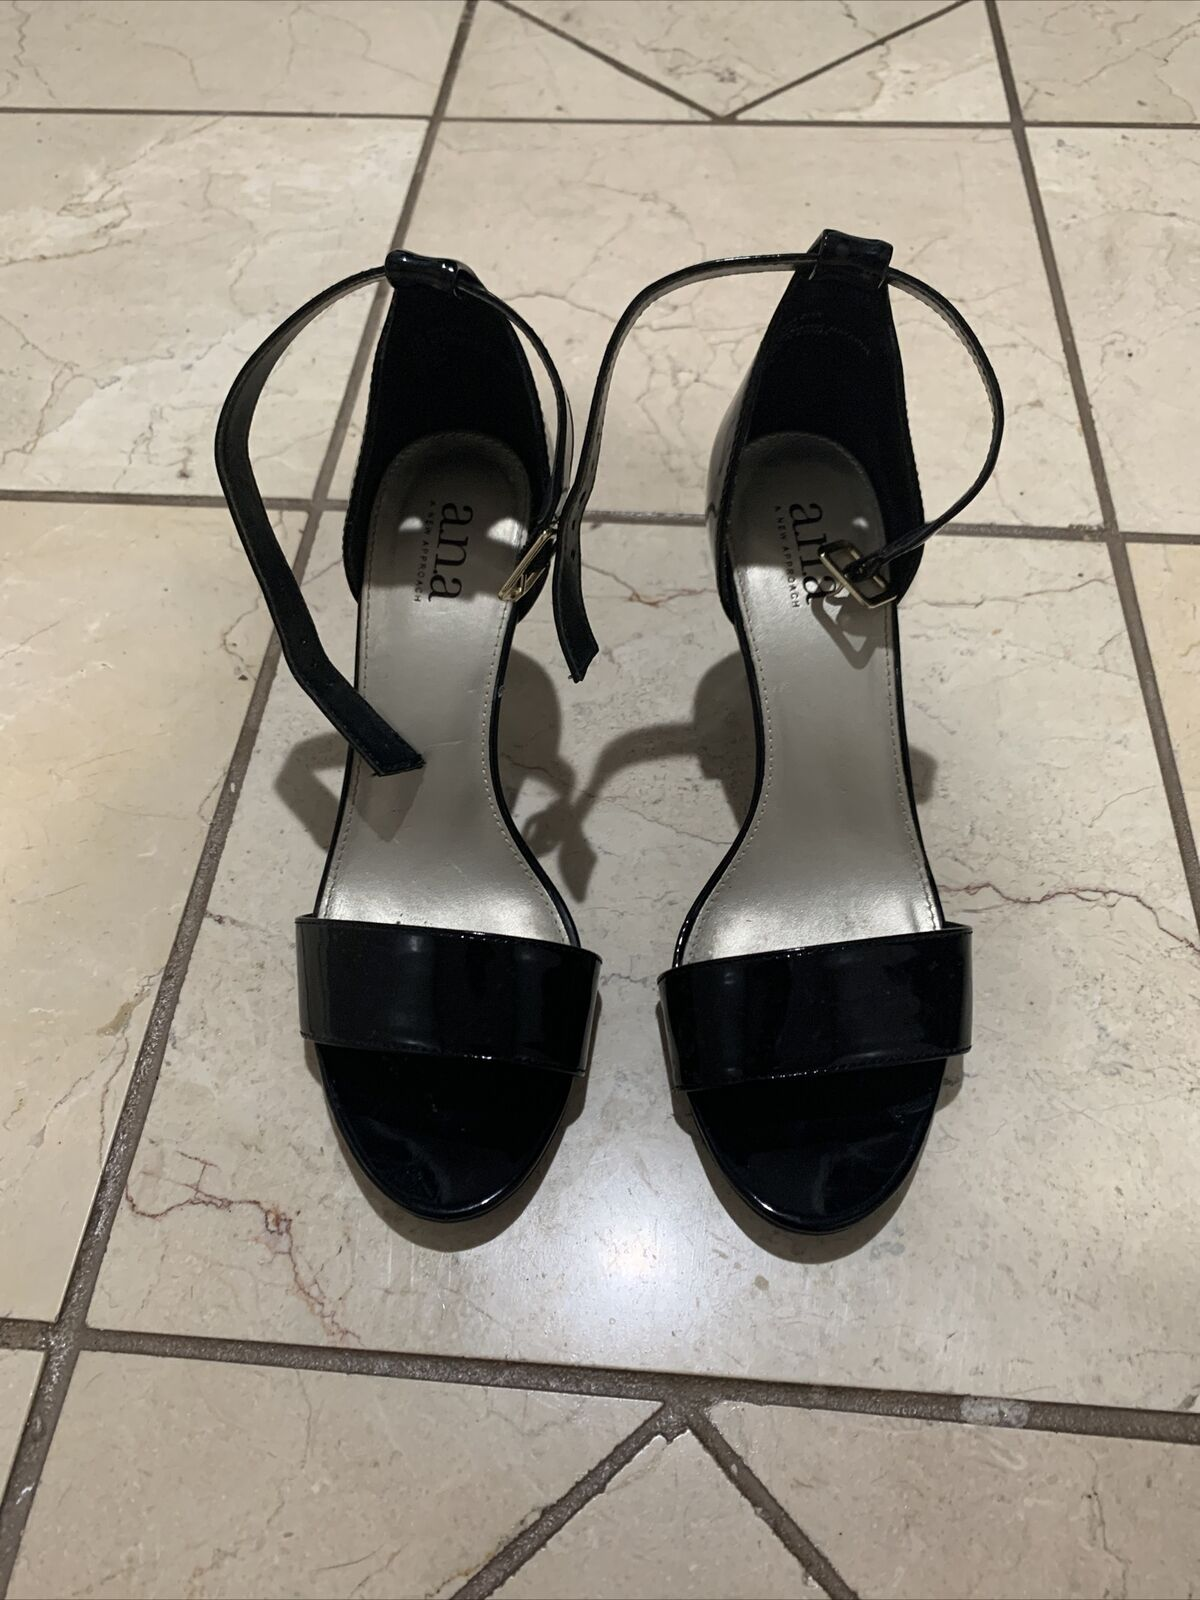 A.N.A Women's Shoes Open Toe High Ankle Strap Heel Black Patent Size 7M Dressy